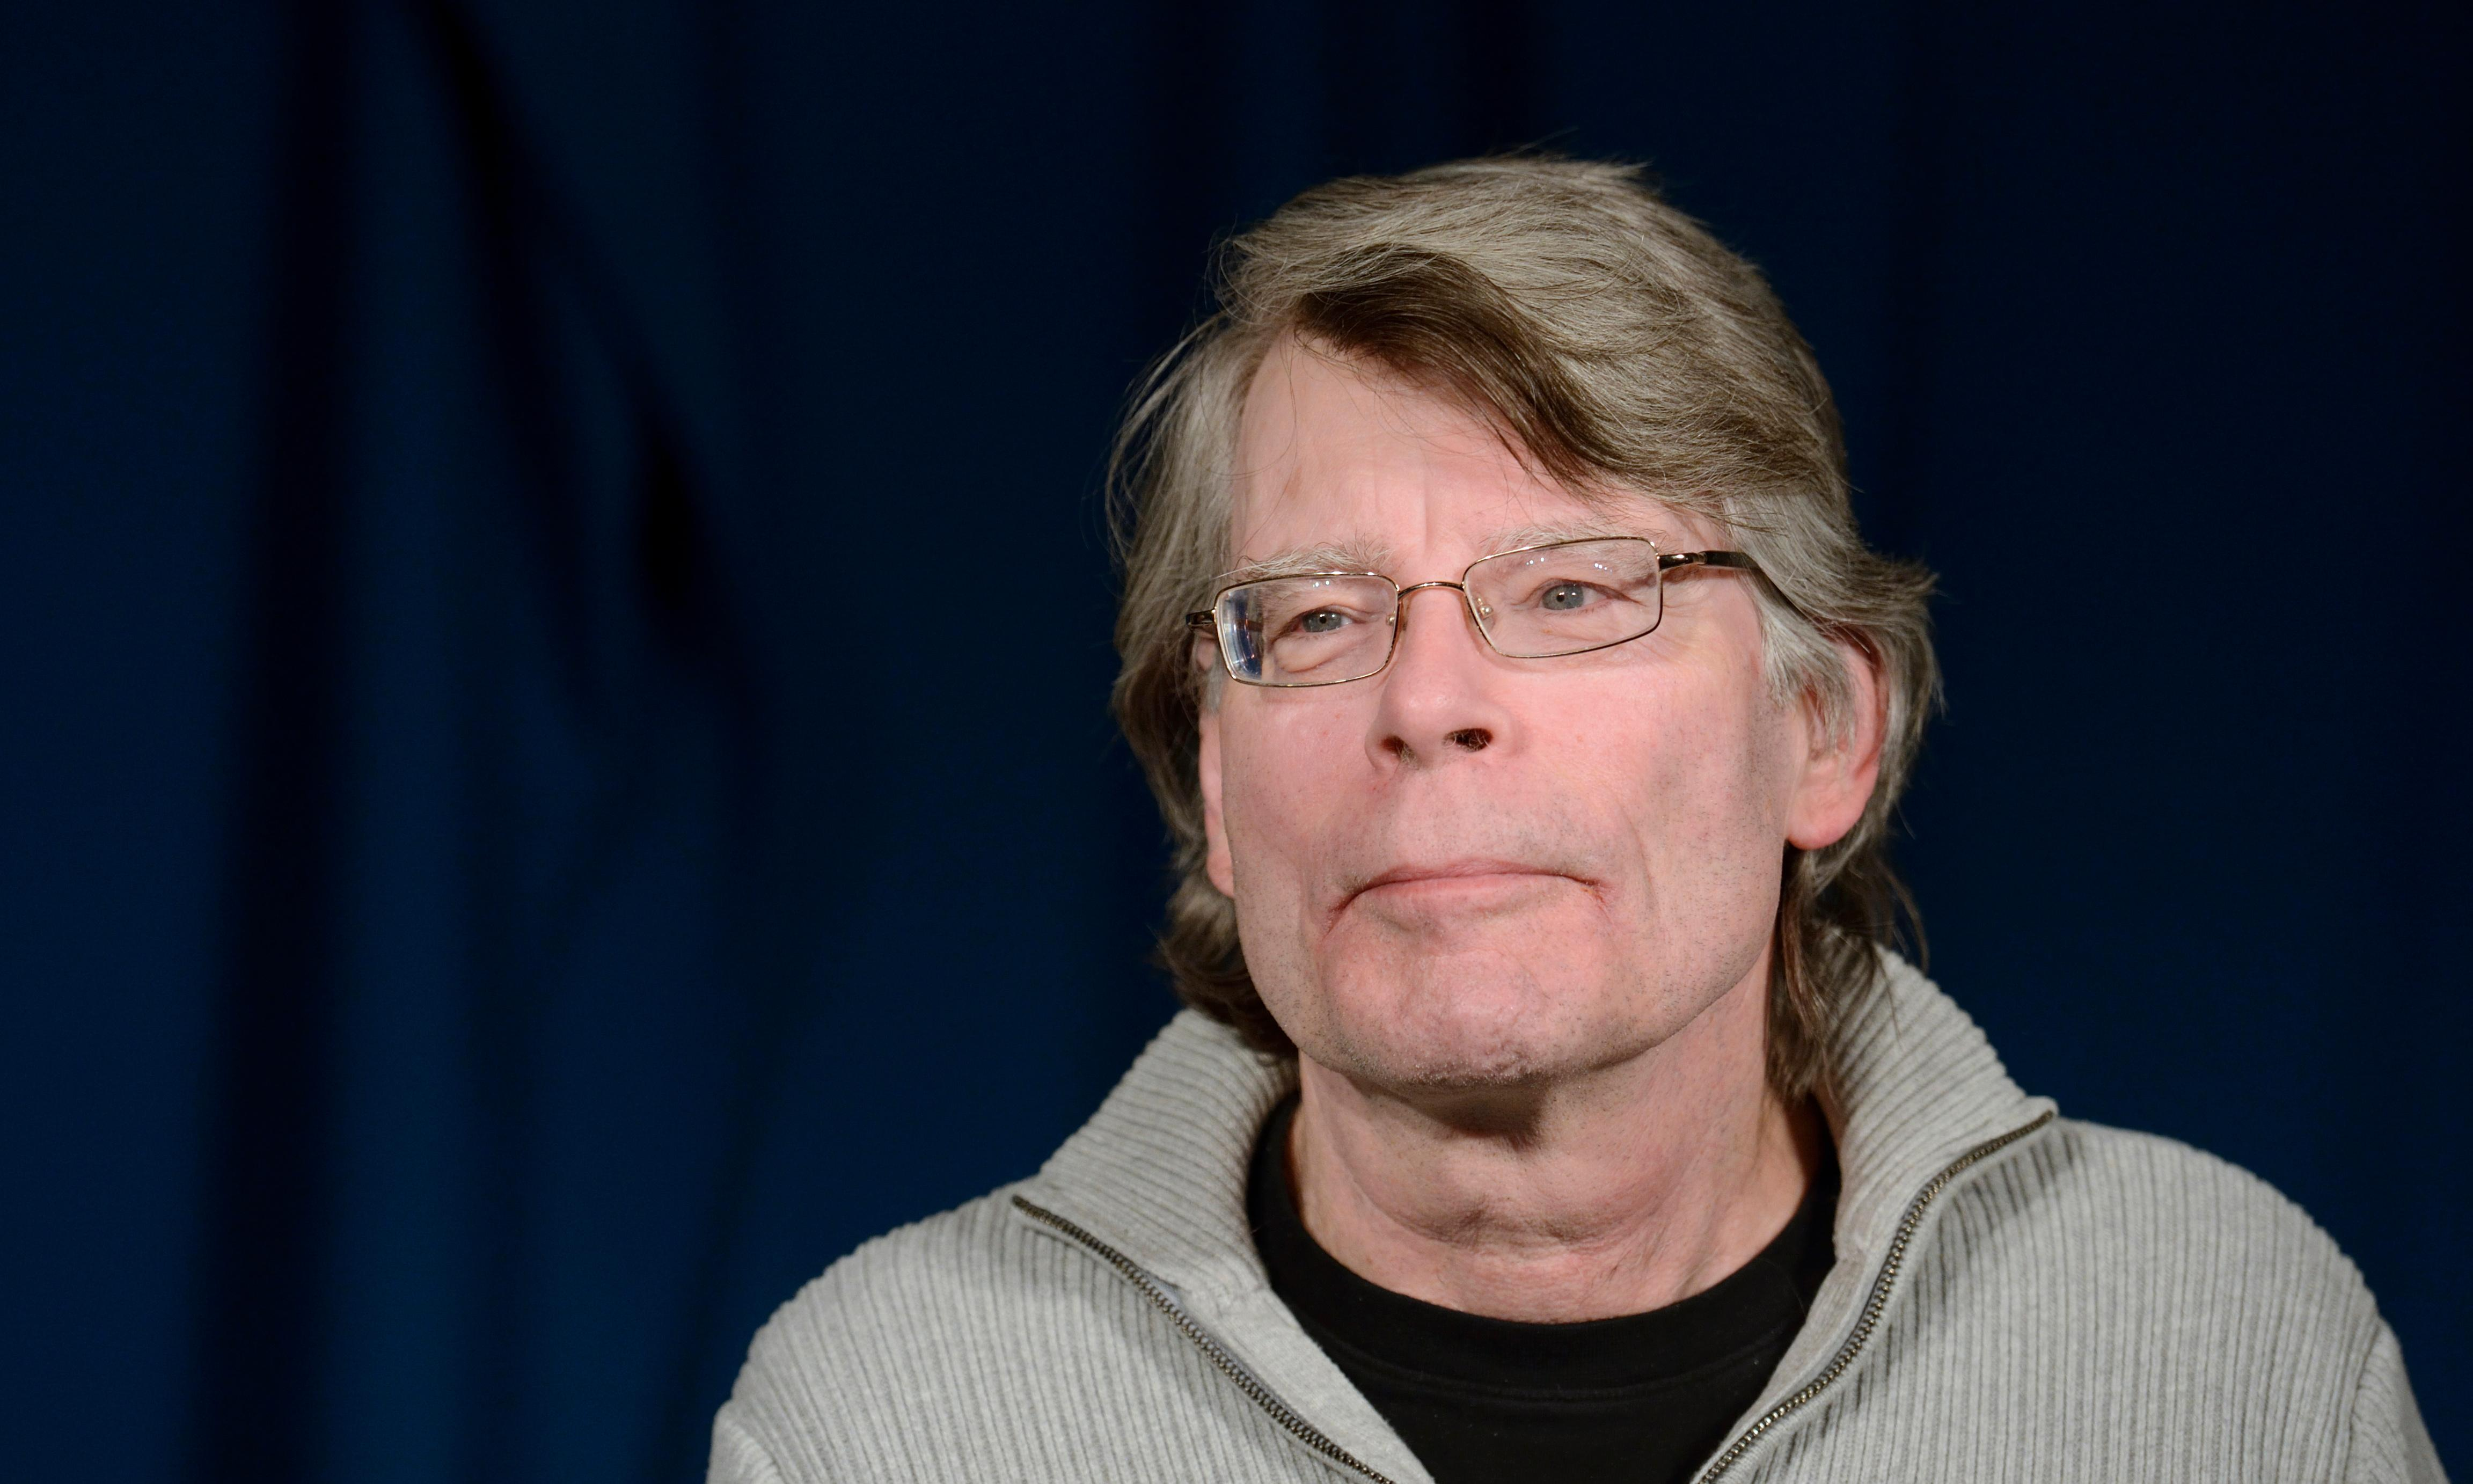 The prince of punching up: why Stephen King rules Twitter